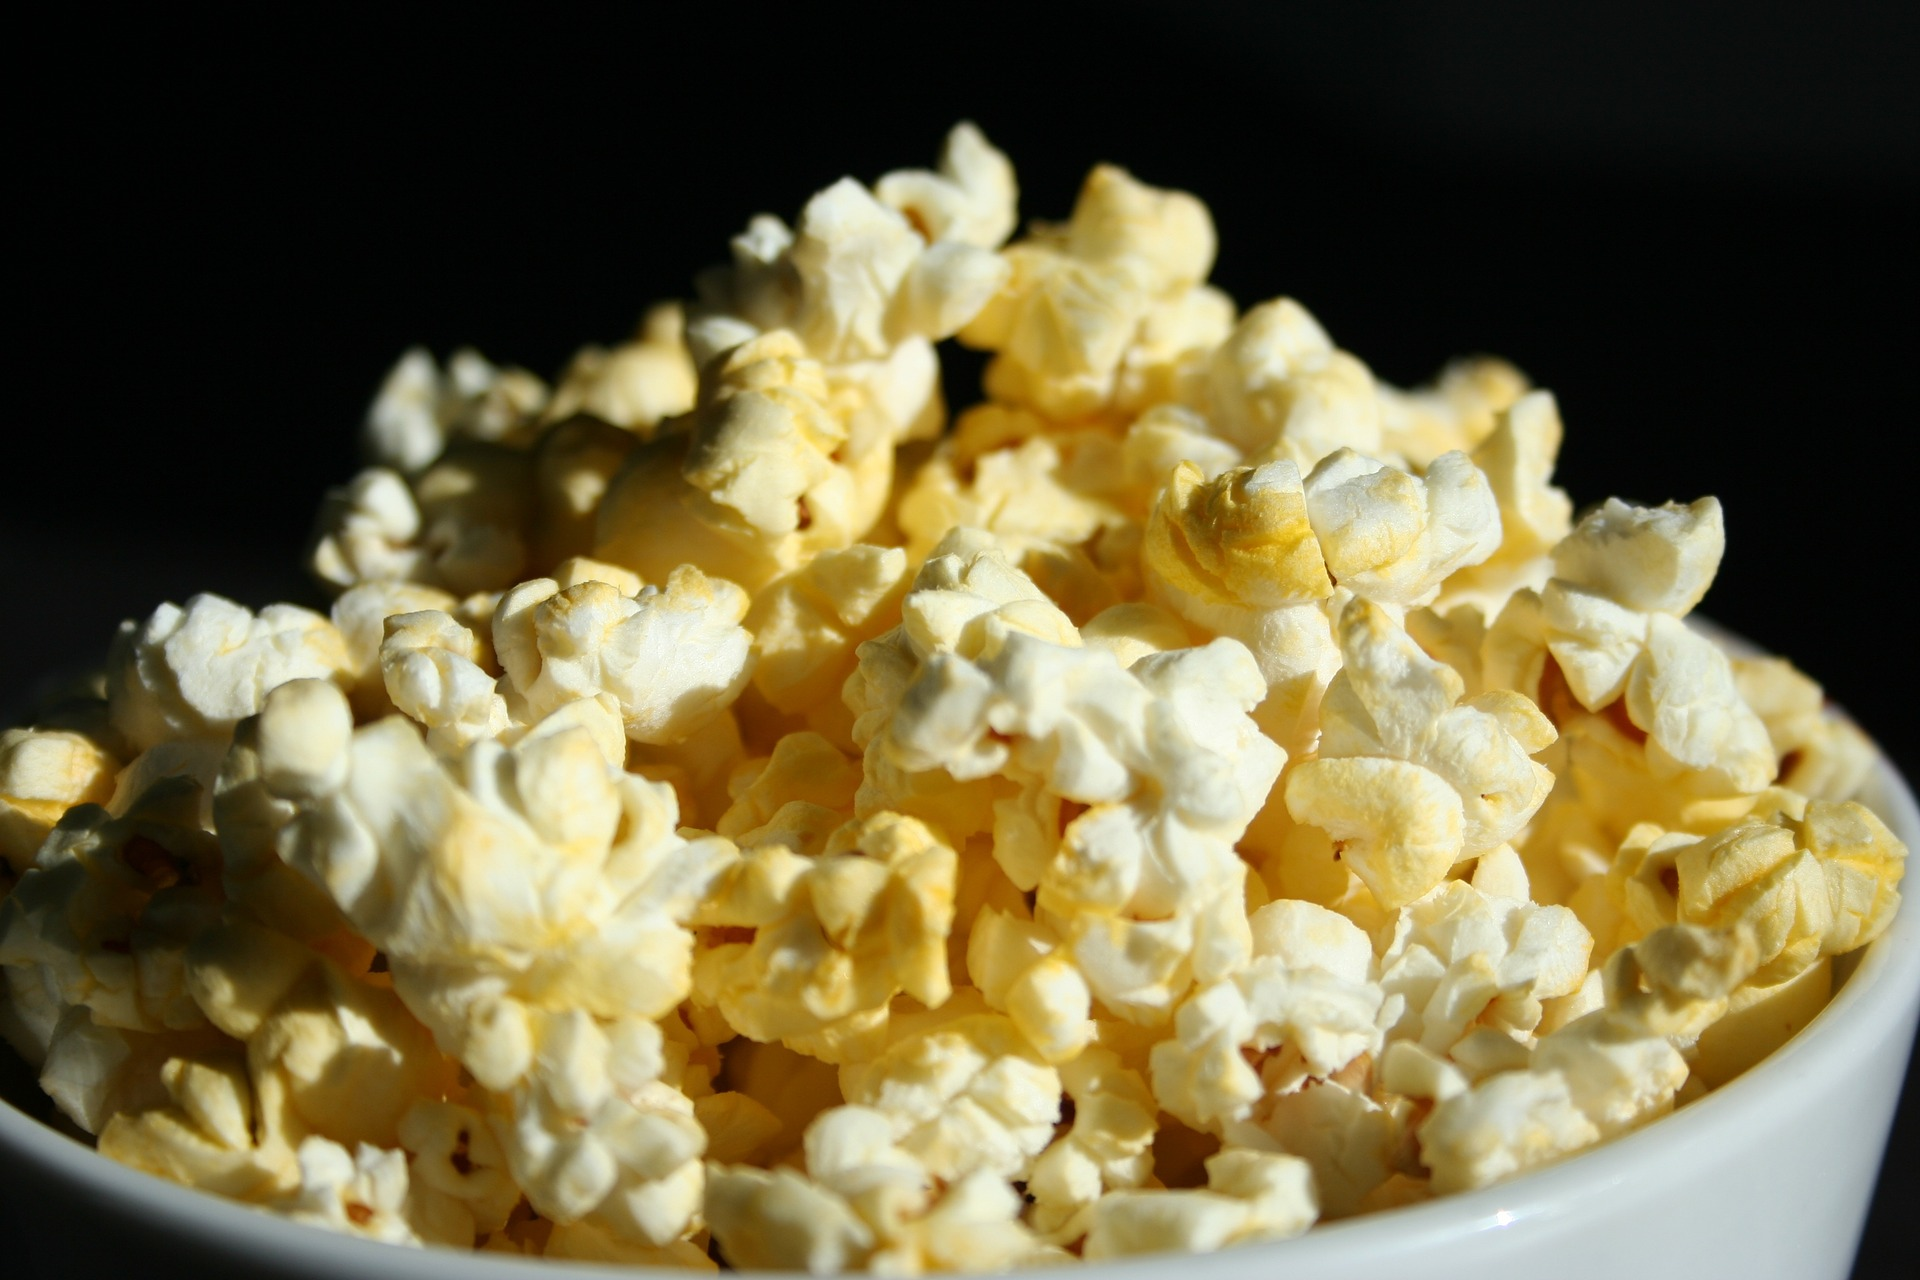 bucket of popcorn to enjoy while streaming movies